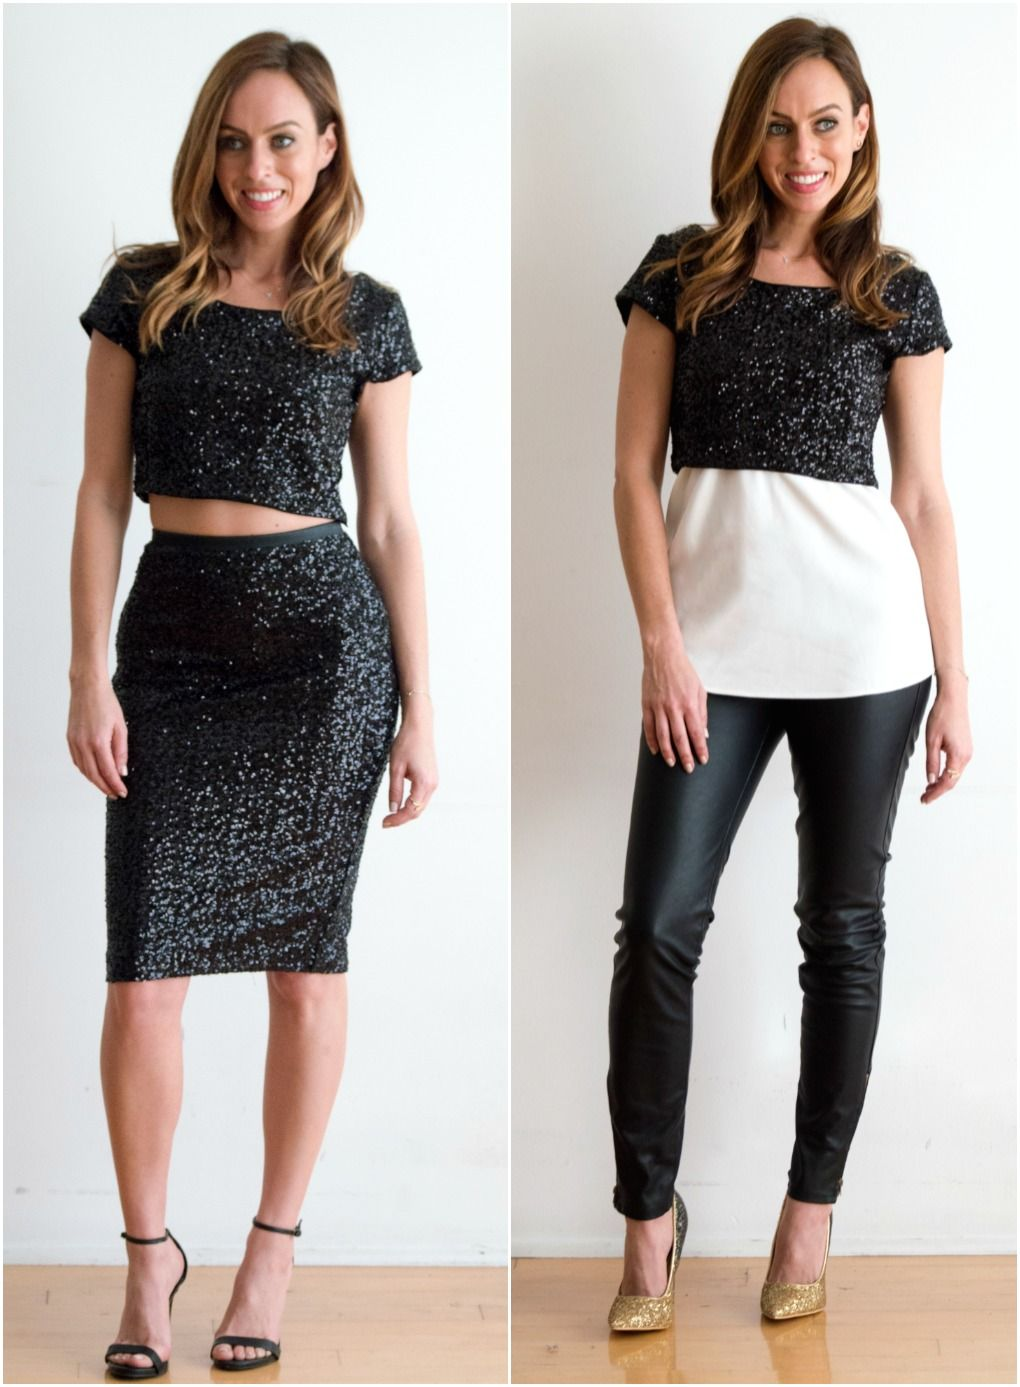 888879063d Sydne Style shows how to wear a sequin crop top for new years eve outfit  ideas